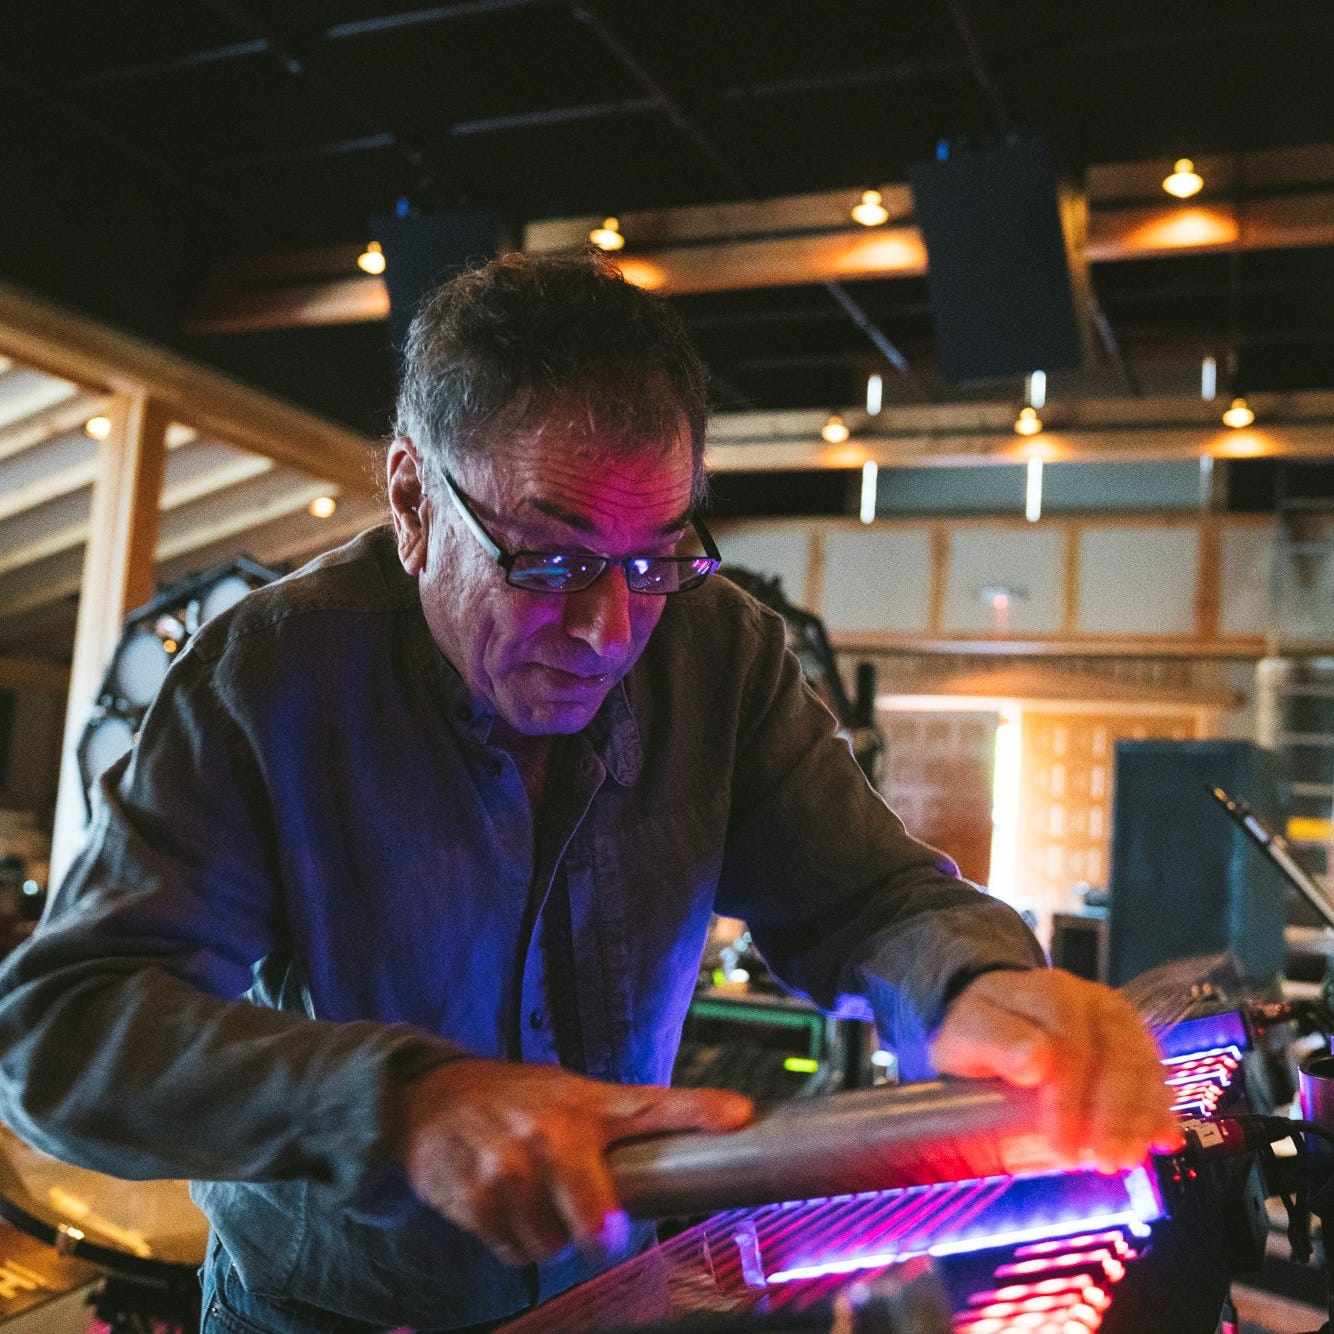 Grateful Dead drummer Mickey Hart on tour with visual art